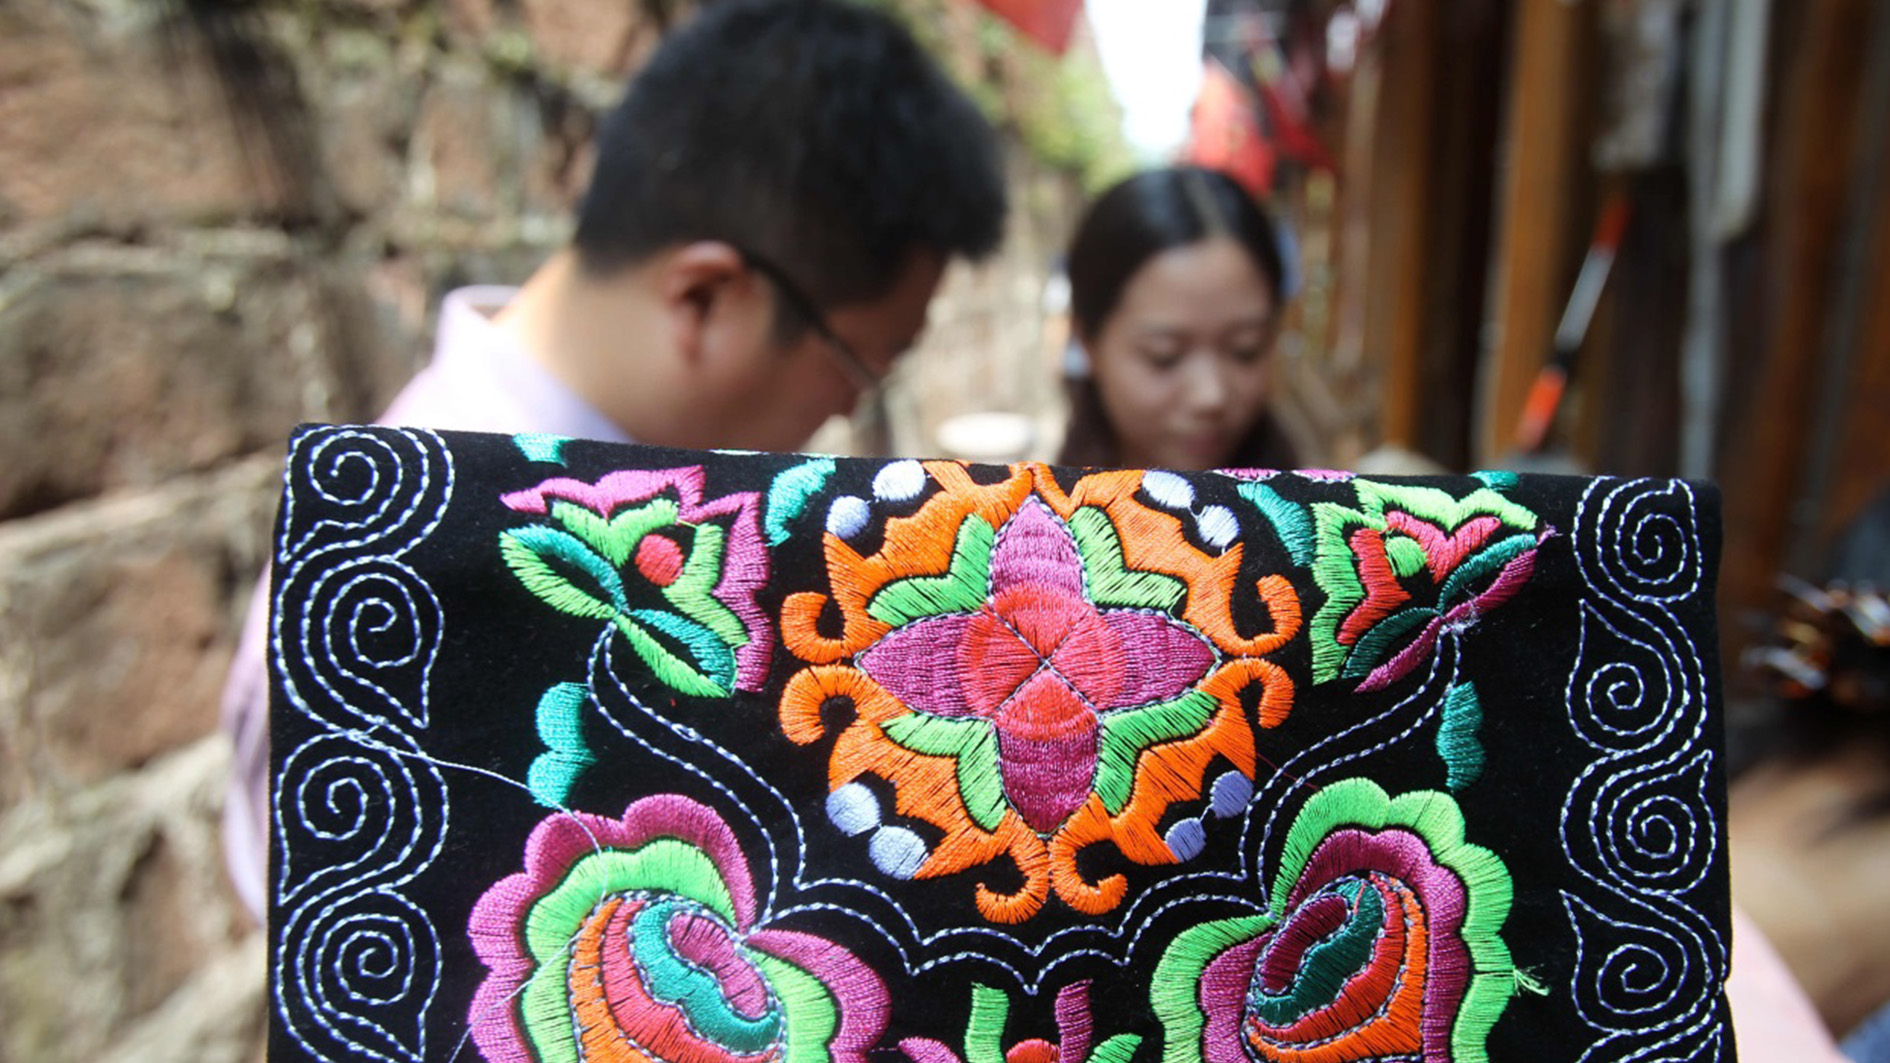 Intangible cultural heritage of Miao embroidery boosts local economy